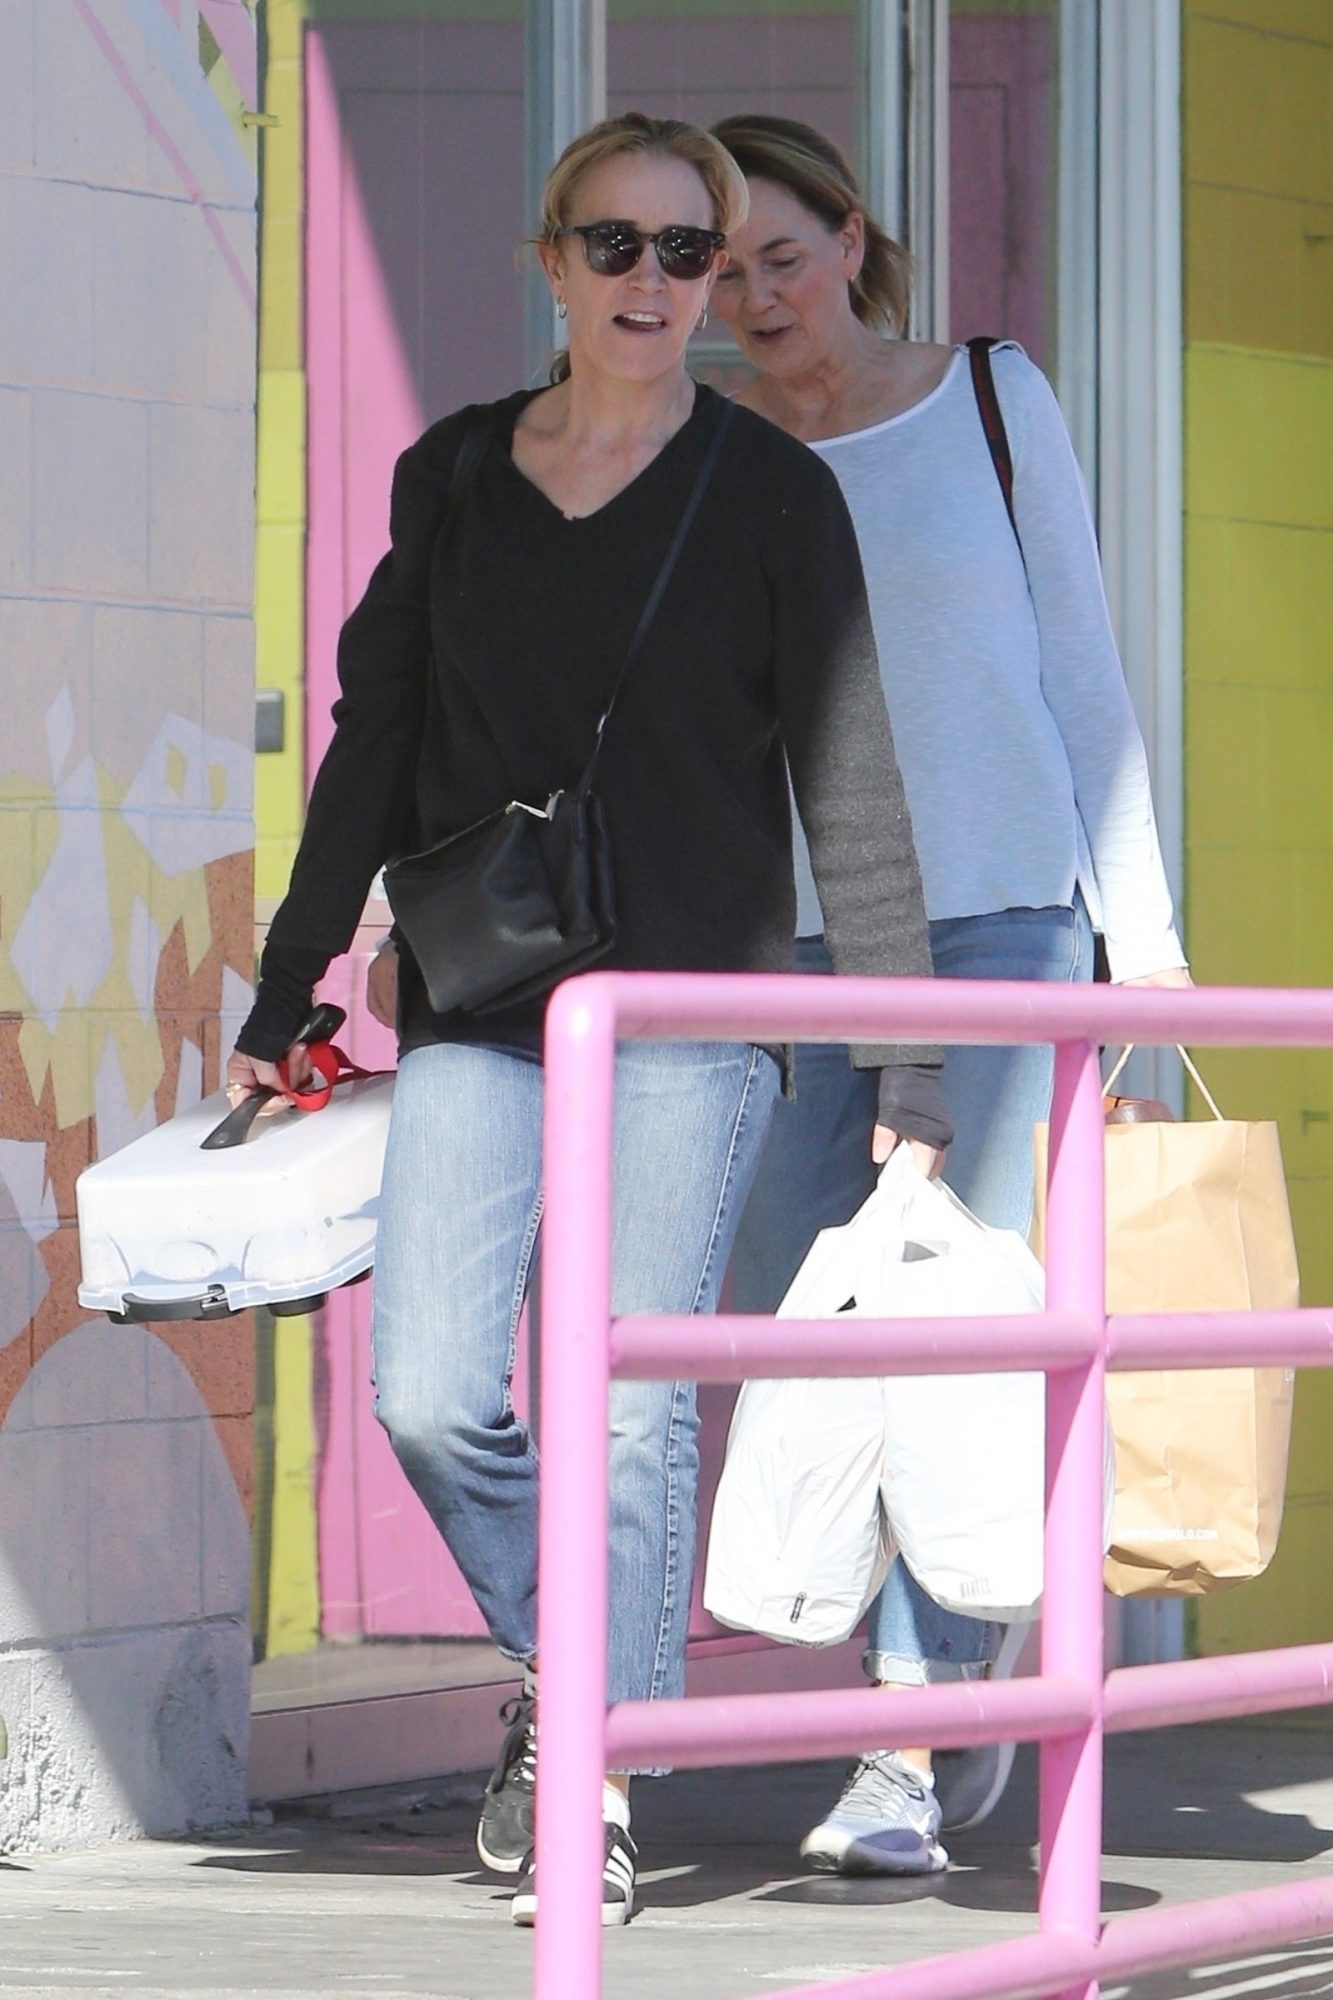 Felicity Huffman brings some cupcake treats as she arrives for her community service at The Teen Project. The actress was sentenced to 250 hours of community service as part of her sentence for her involvement in the college admissions scandal.